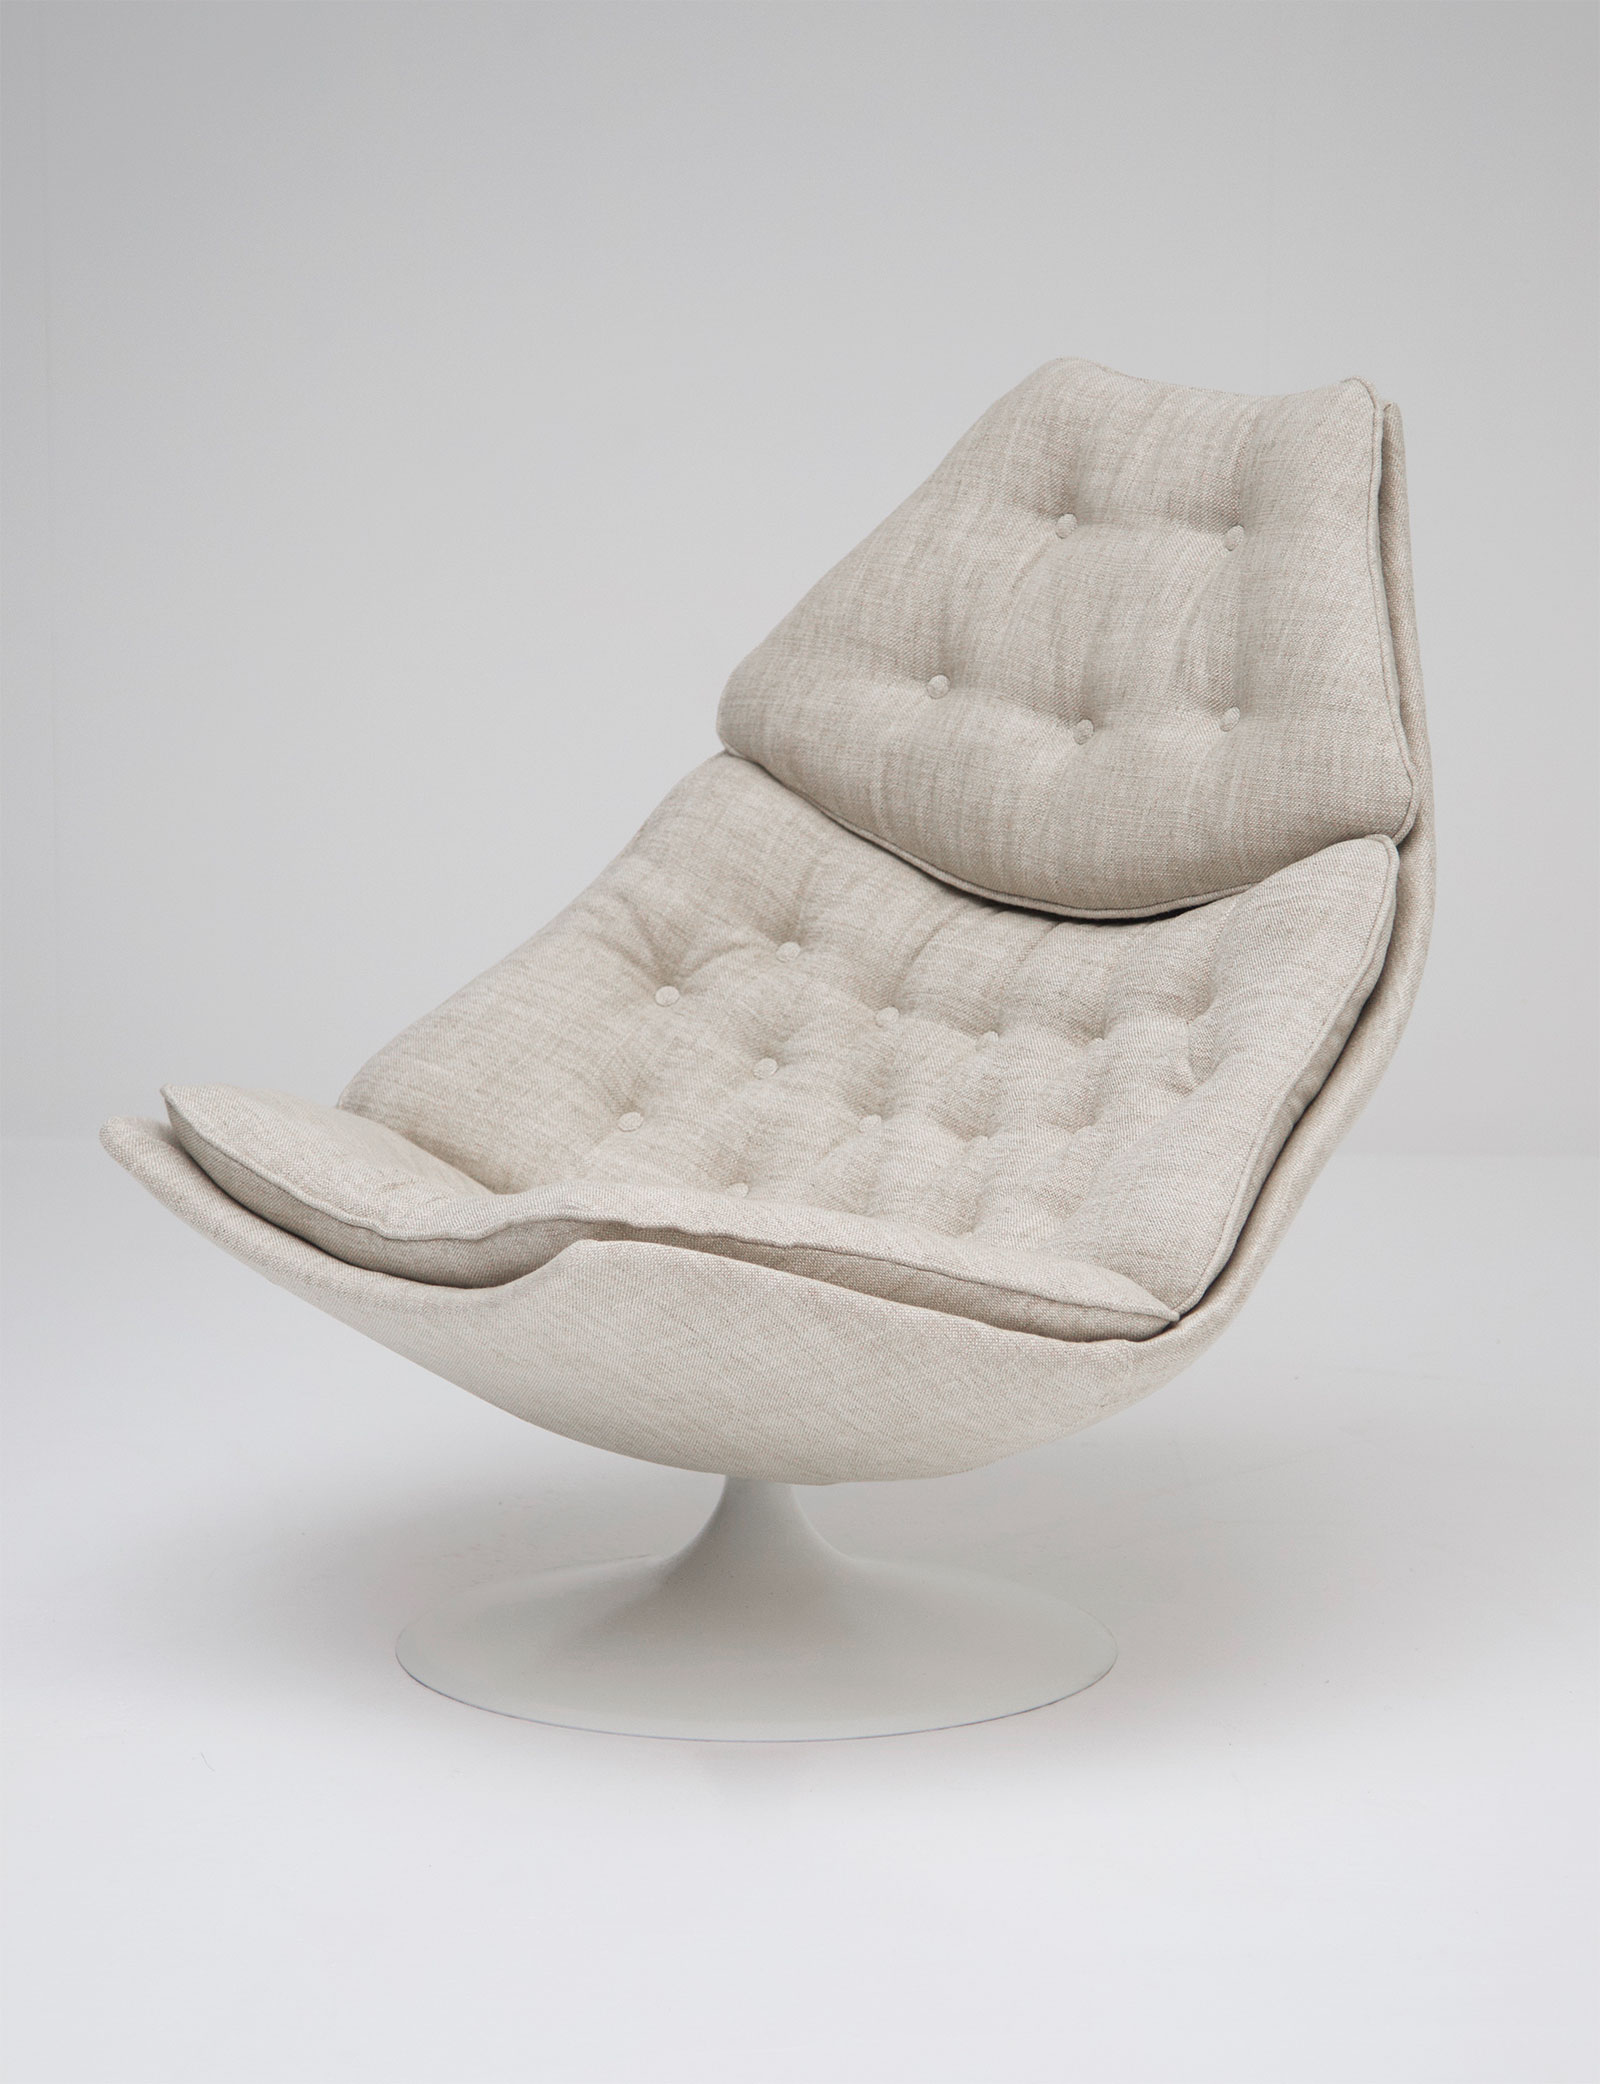 artifort f588 fauteuil by geoffrey harcourtimage 2